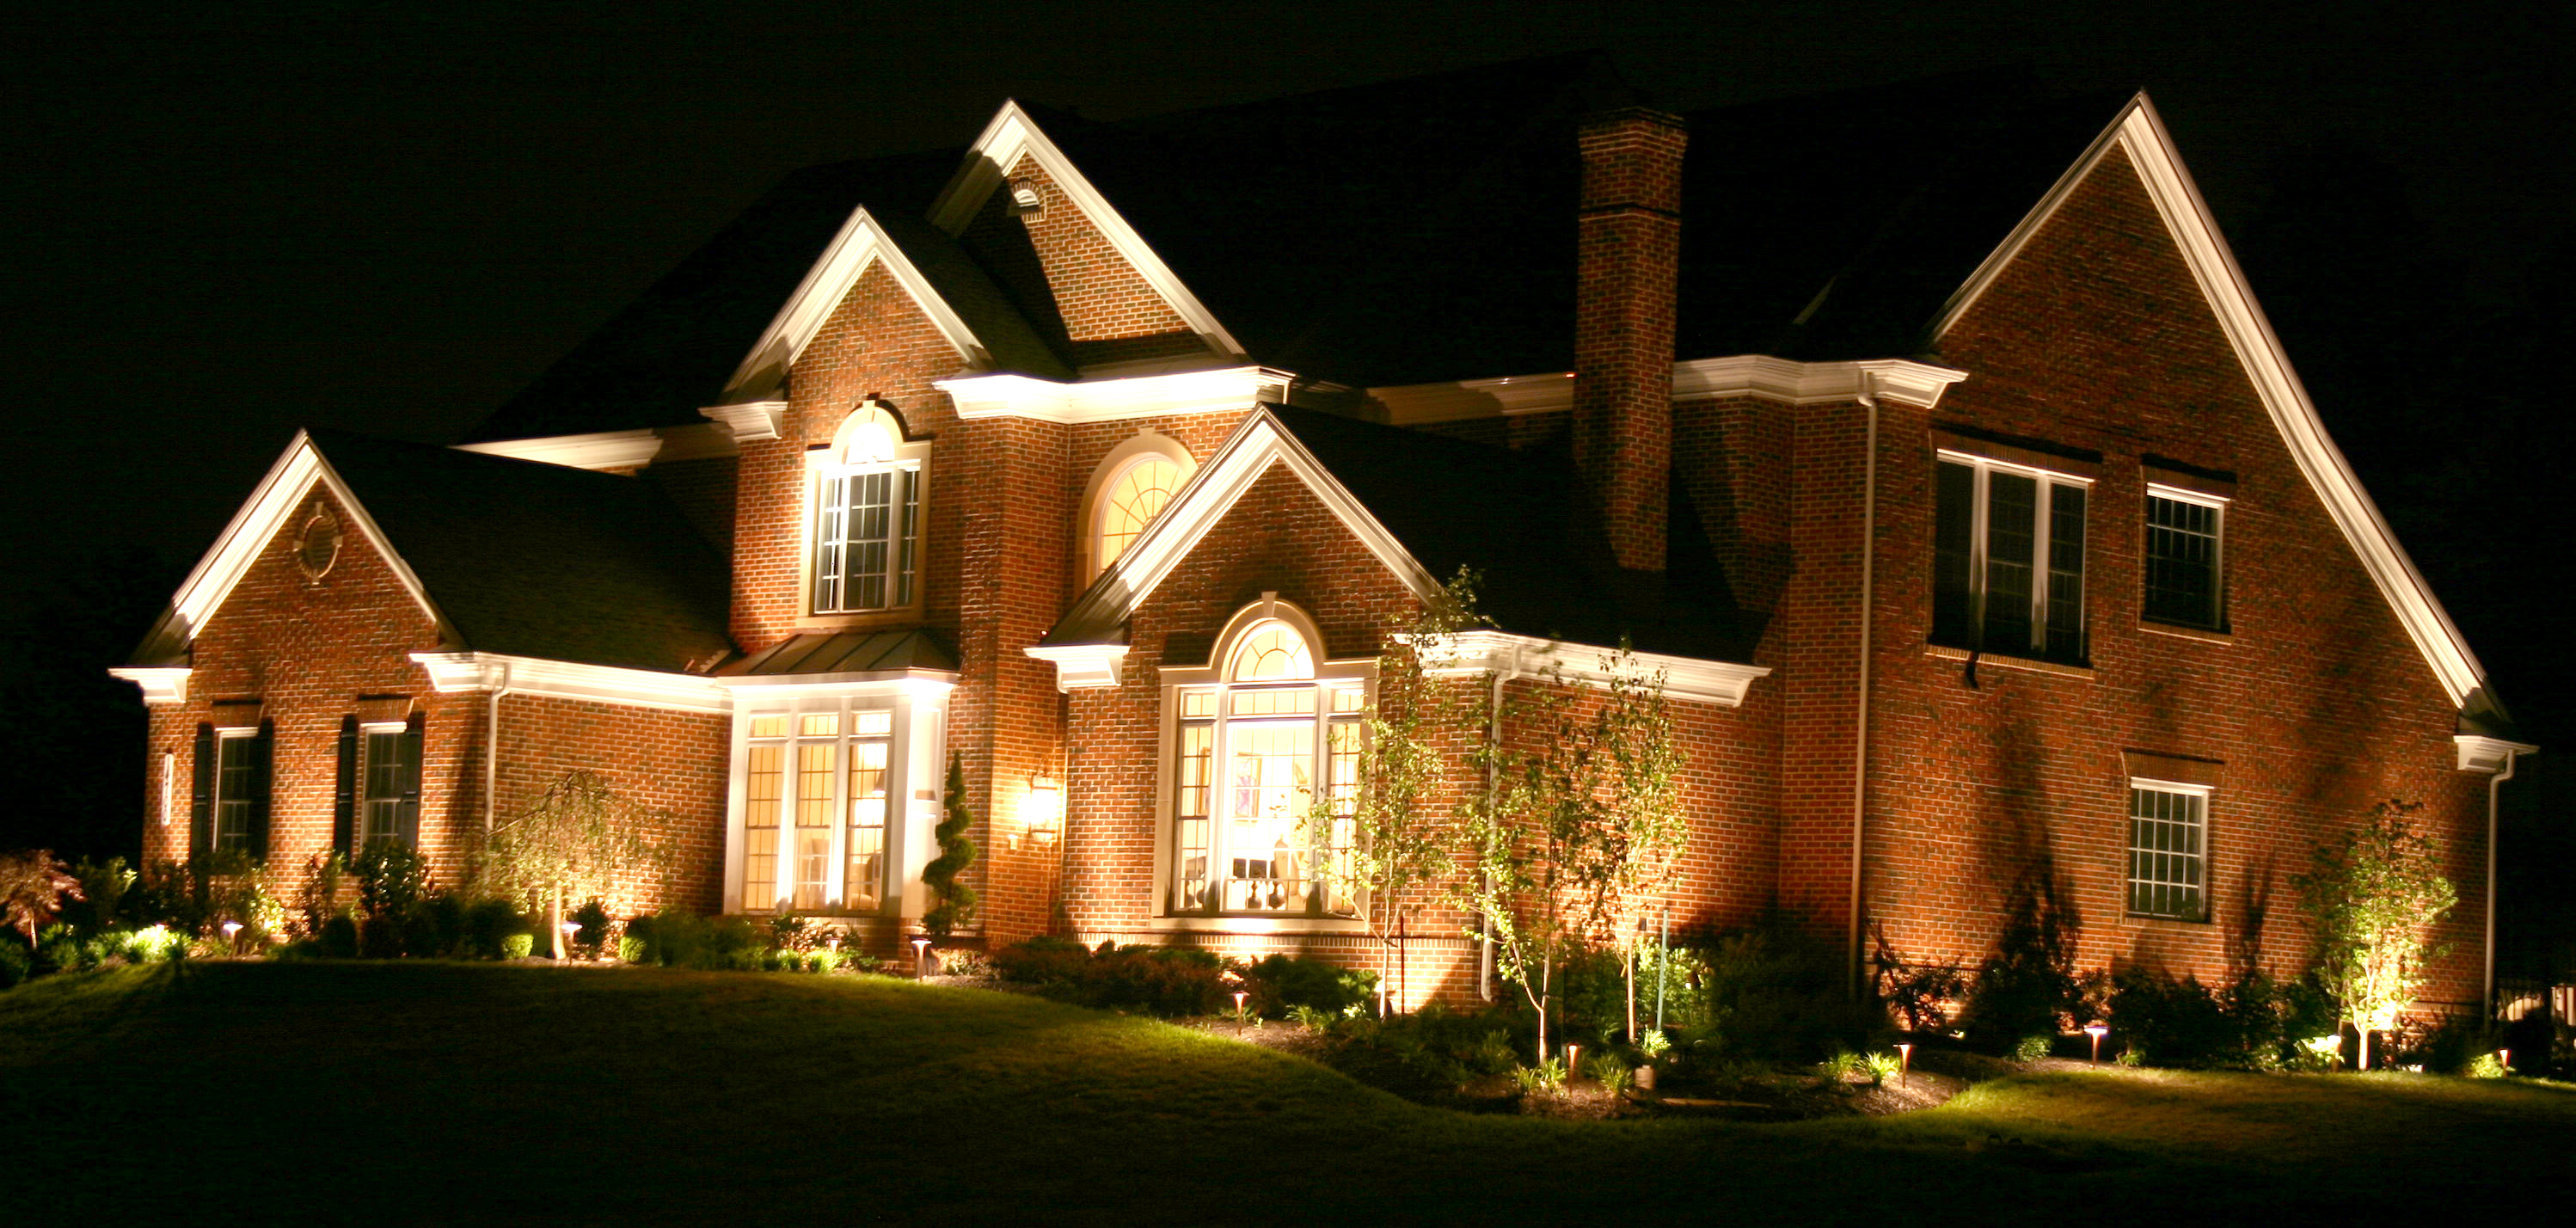 size architectural of chandelier patio house front fixtures porch from lights full light in chattanooga lighting and outdoor up path outside garage fro